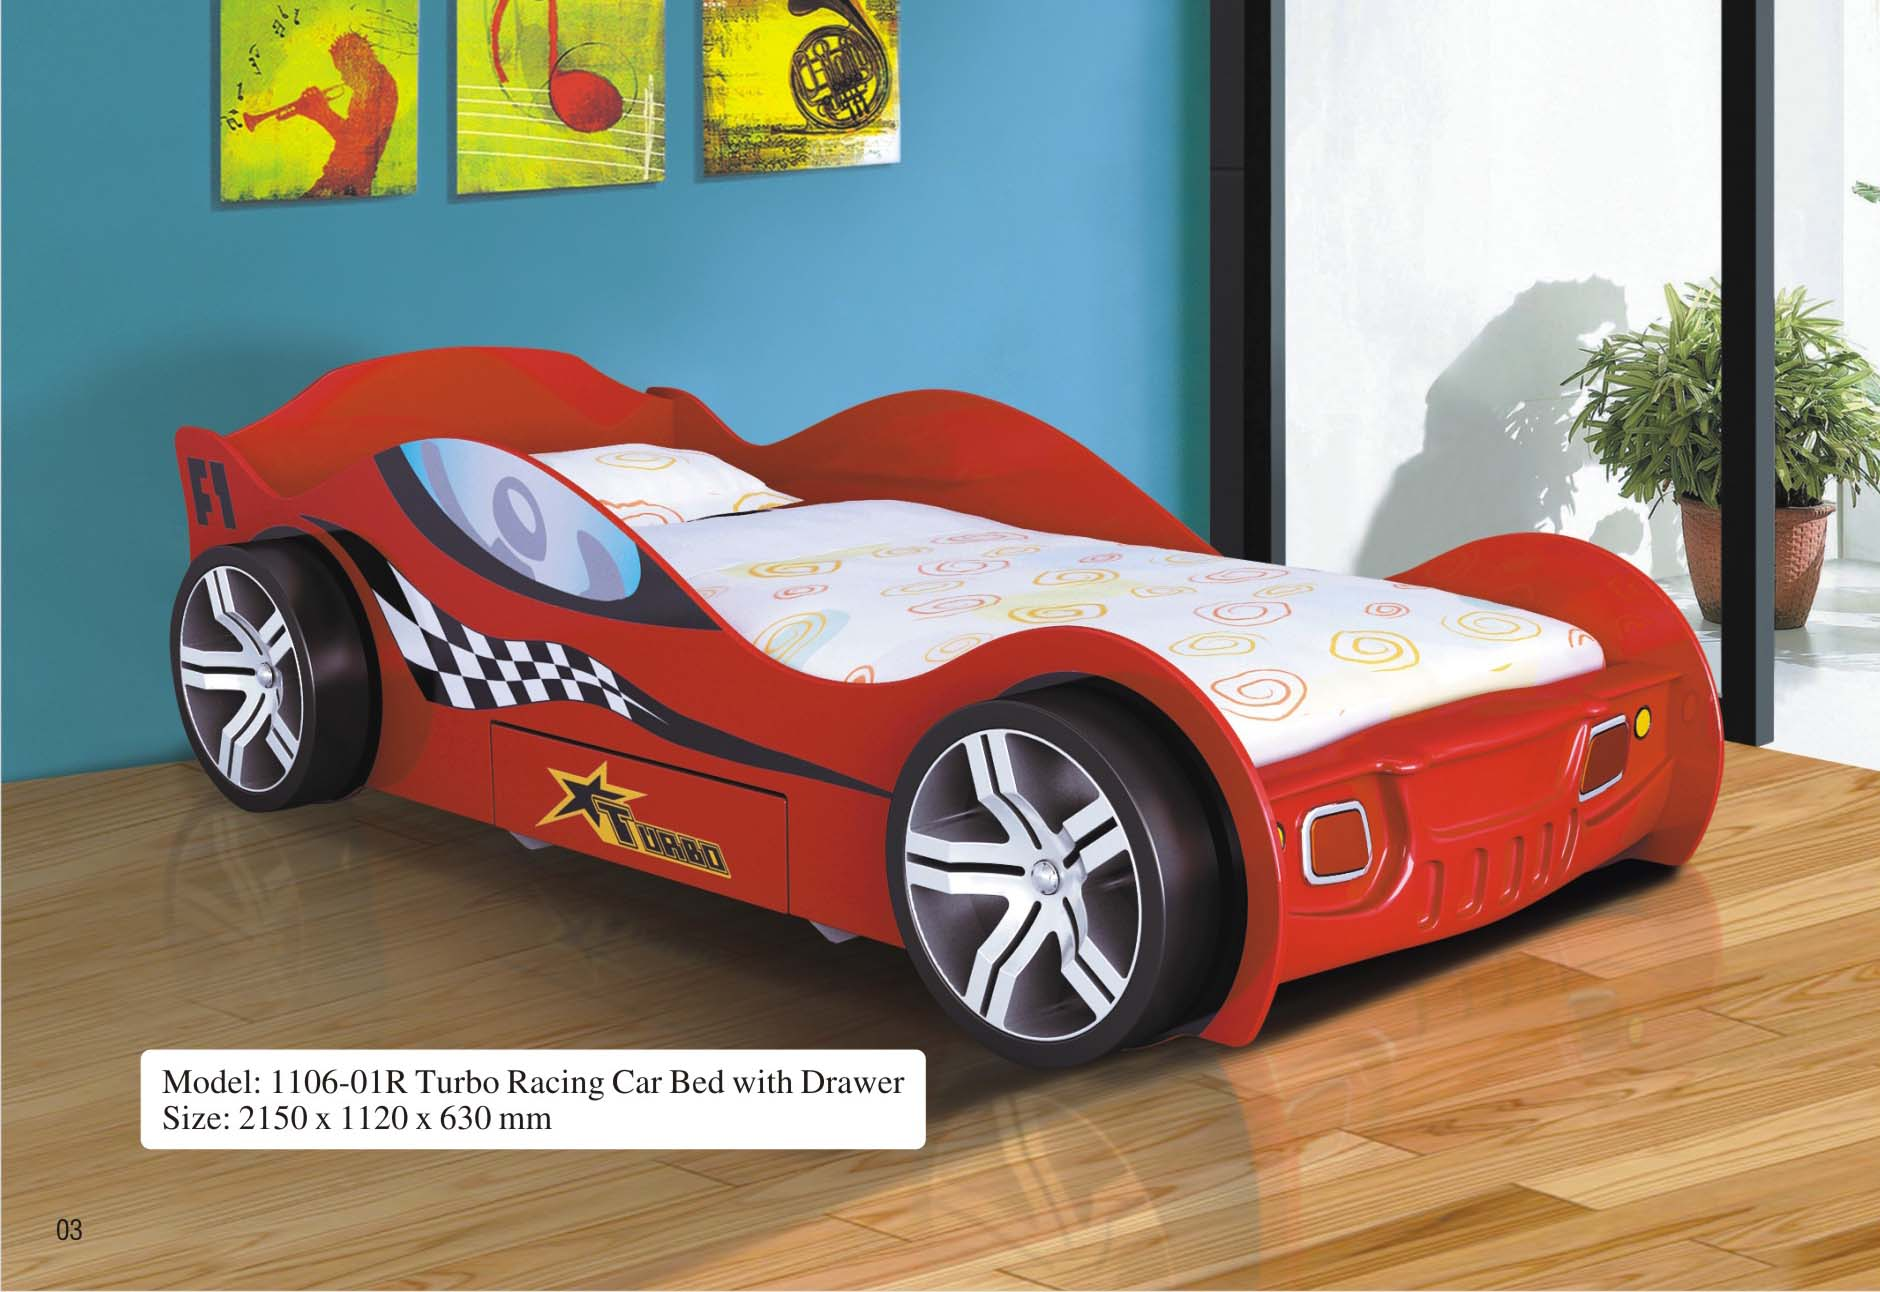 fs lights wheel rider white shop co home car with beds speedster and leds sounds race kids ventura bed product knight